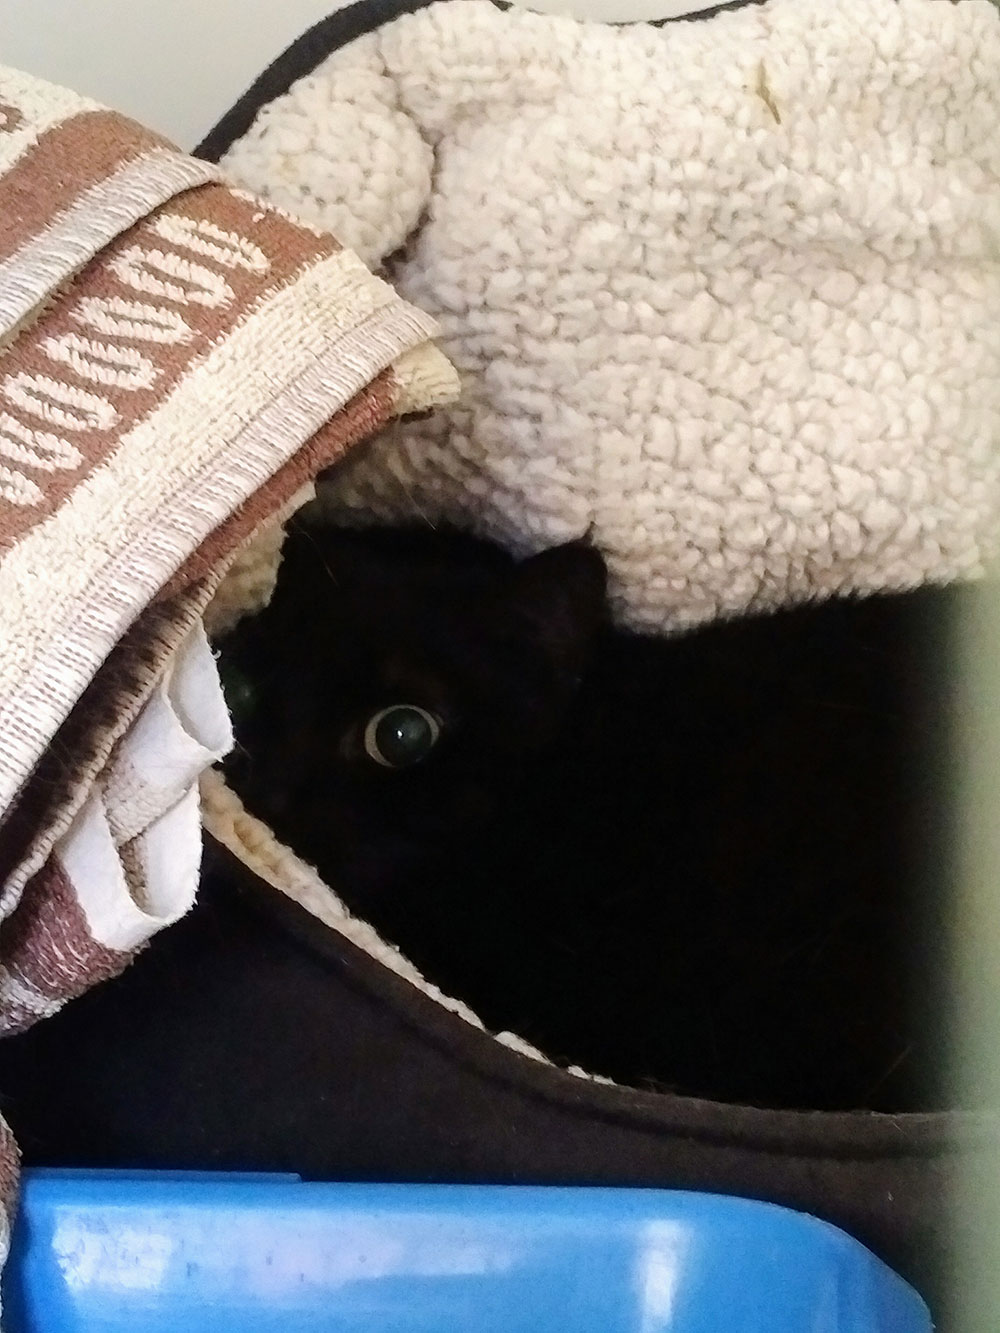 Fabulous slinky black Moggie, snuggled in a cosy bed